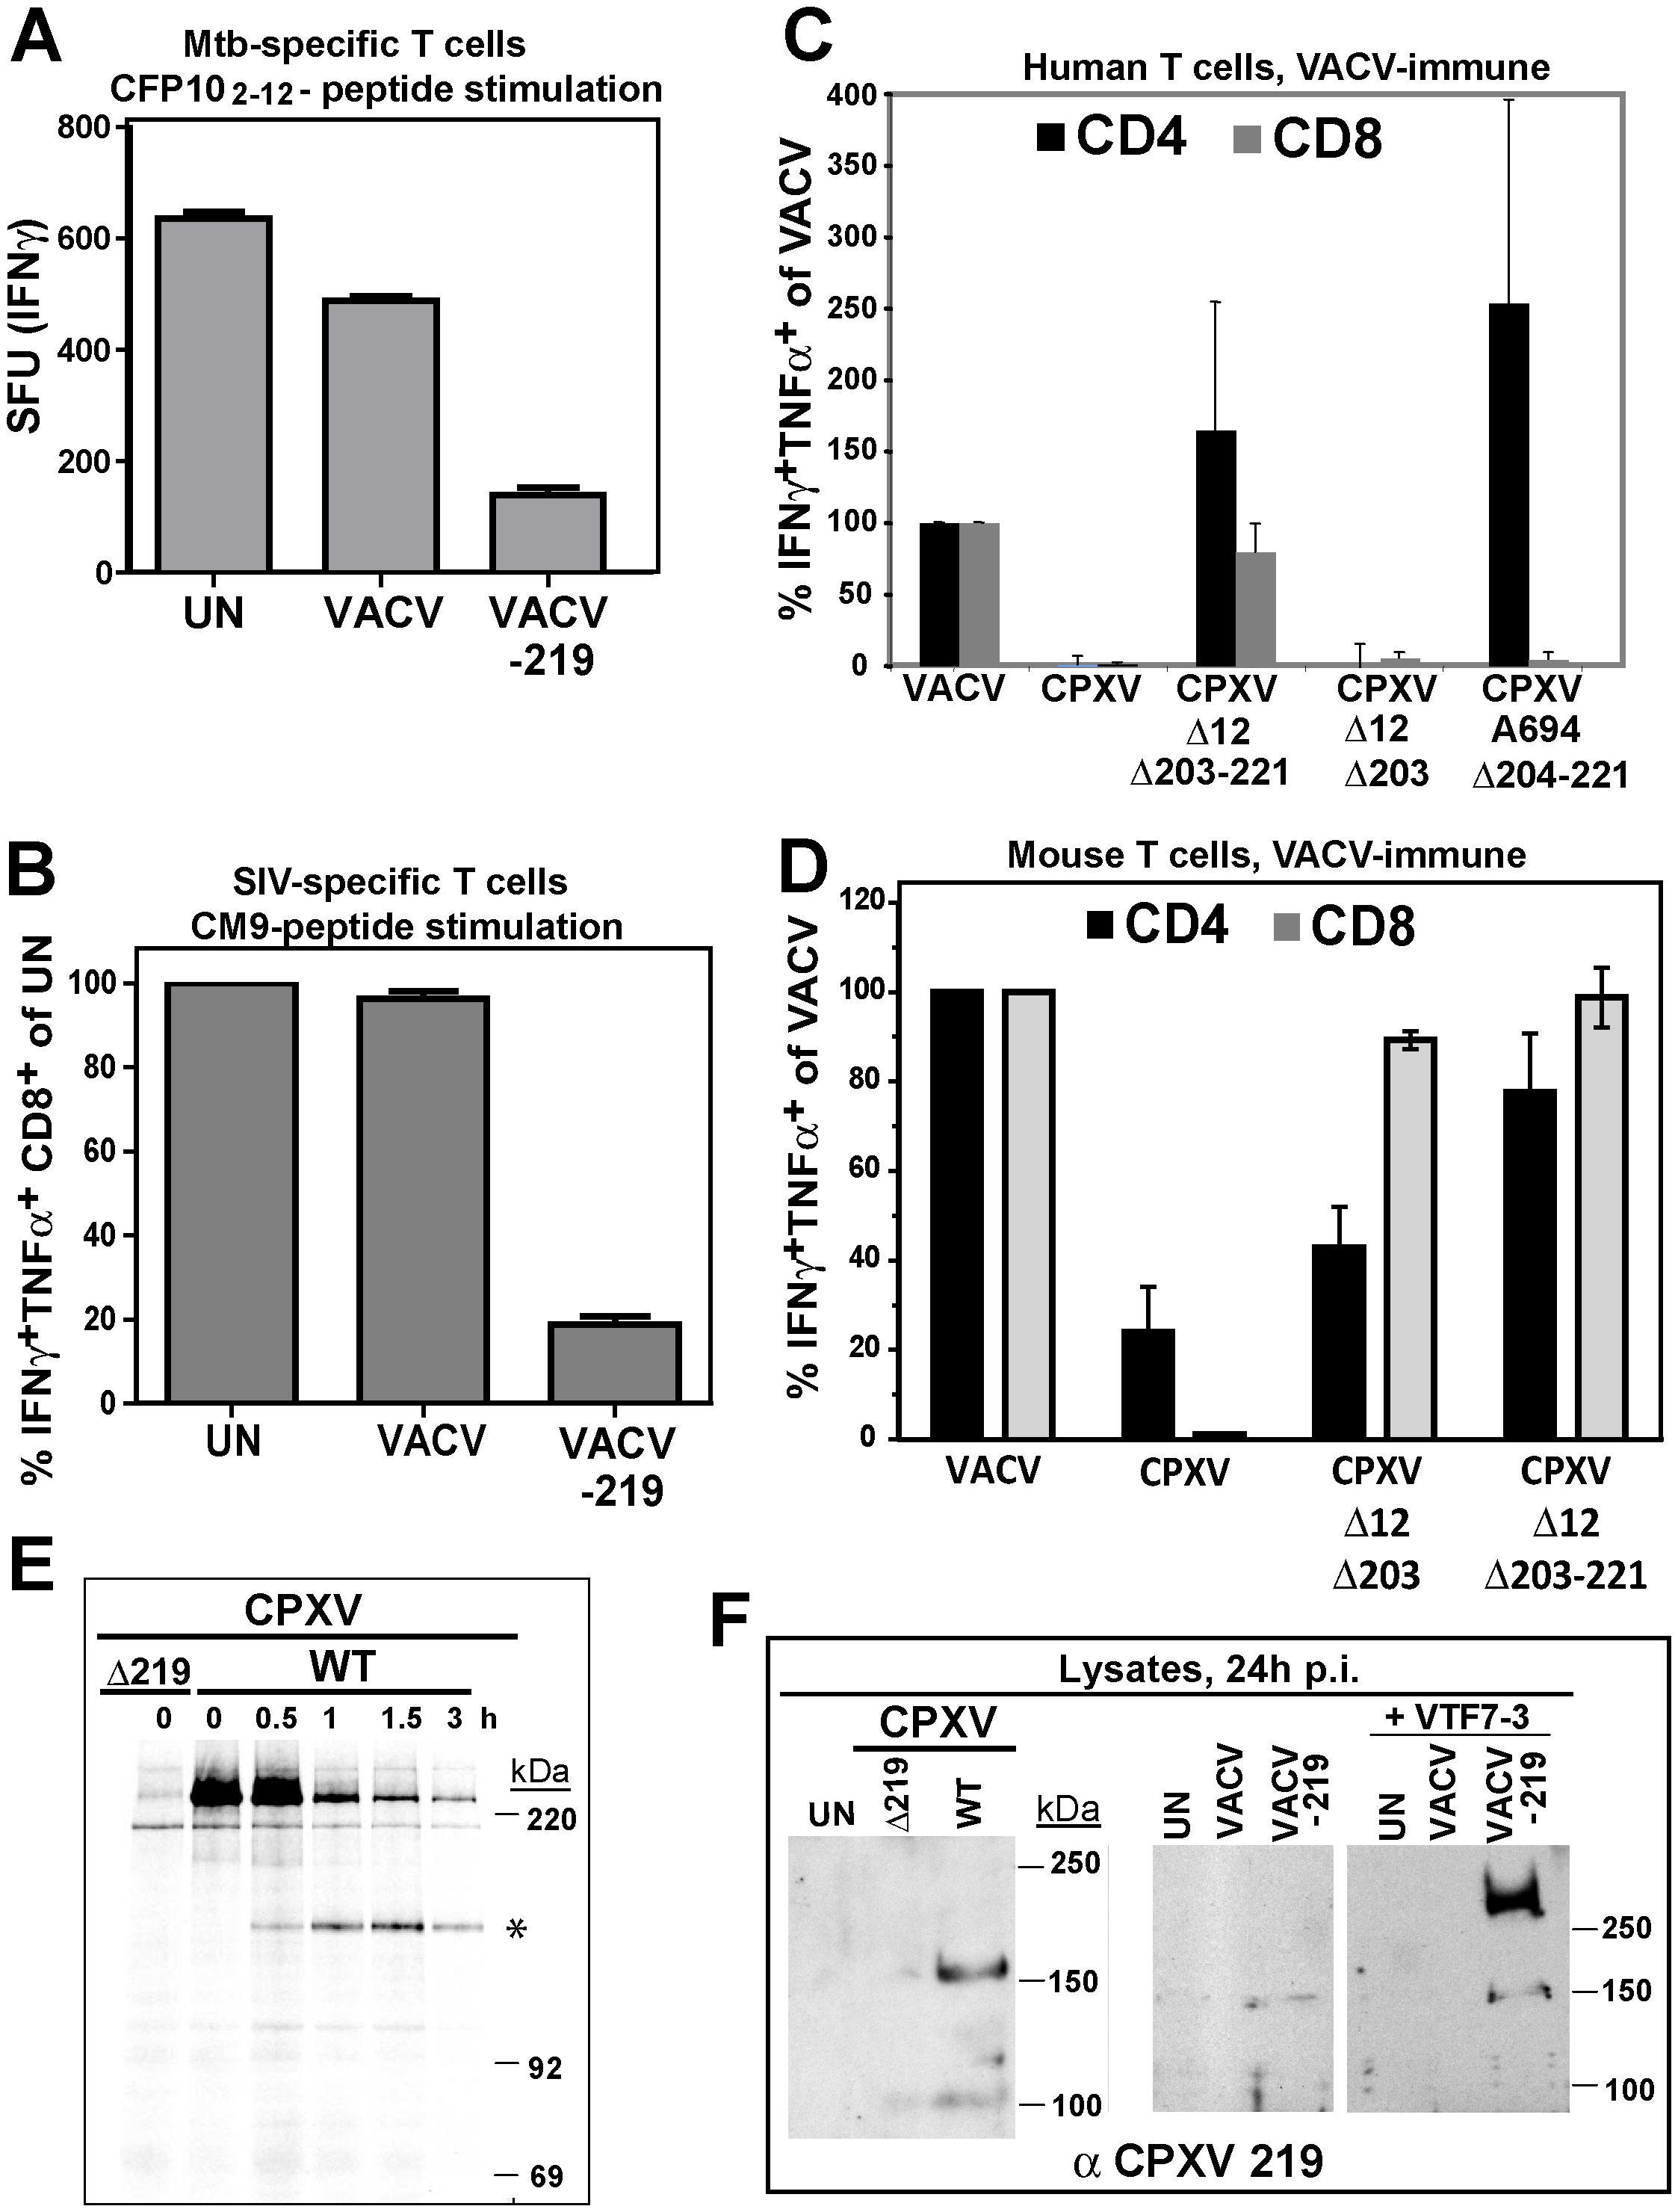 Inhibition of T cell activation by CPXV 219 is species-specific.